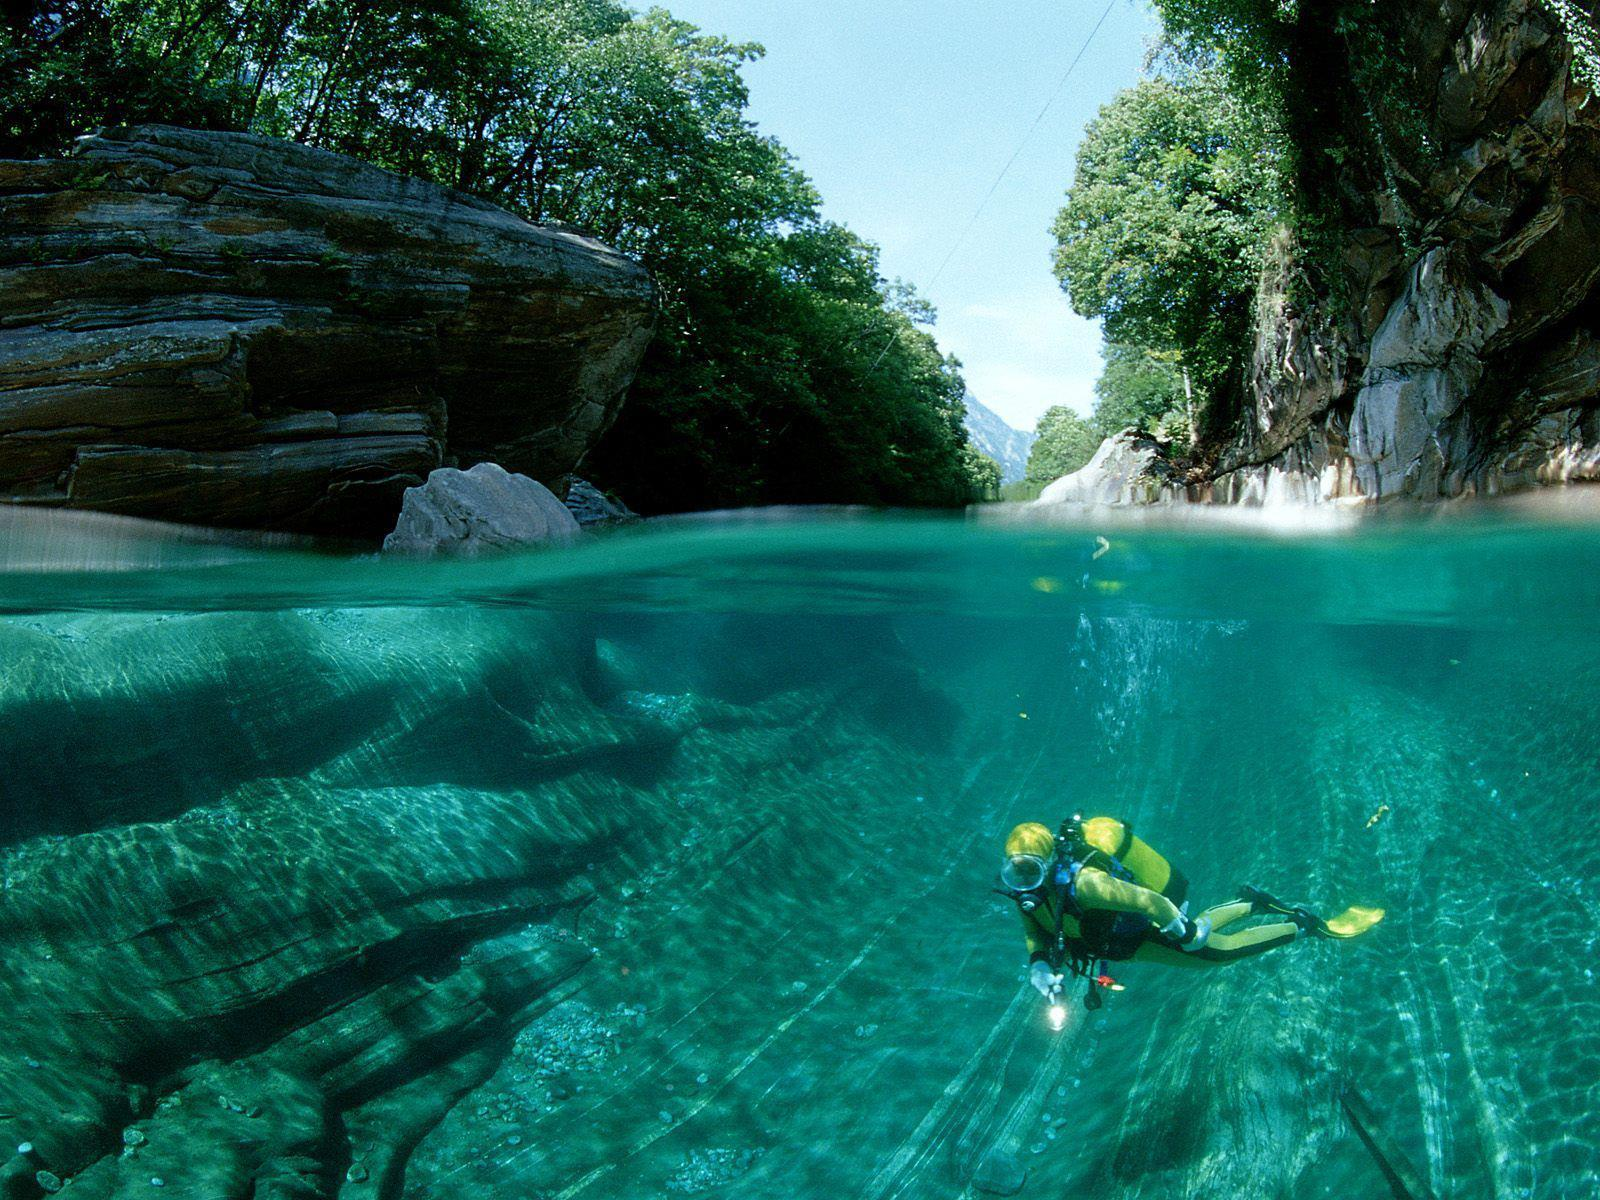 Scuba Awesome split shot of a diver in The Verzasca River, Swiss Alps.